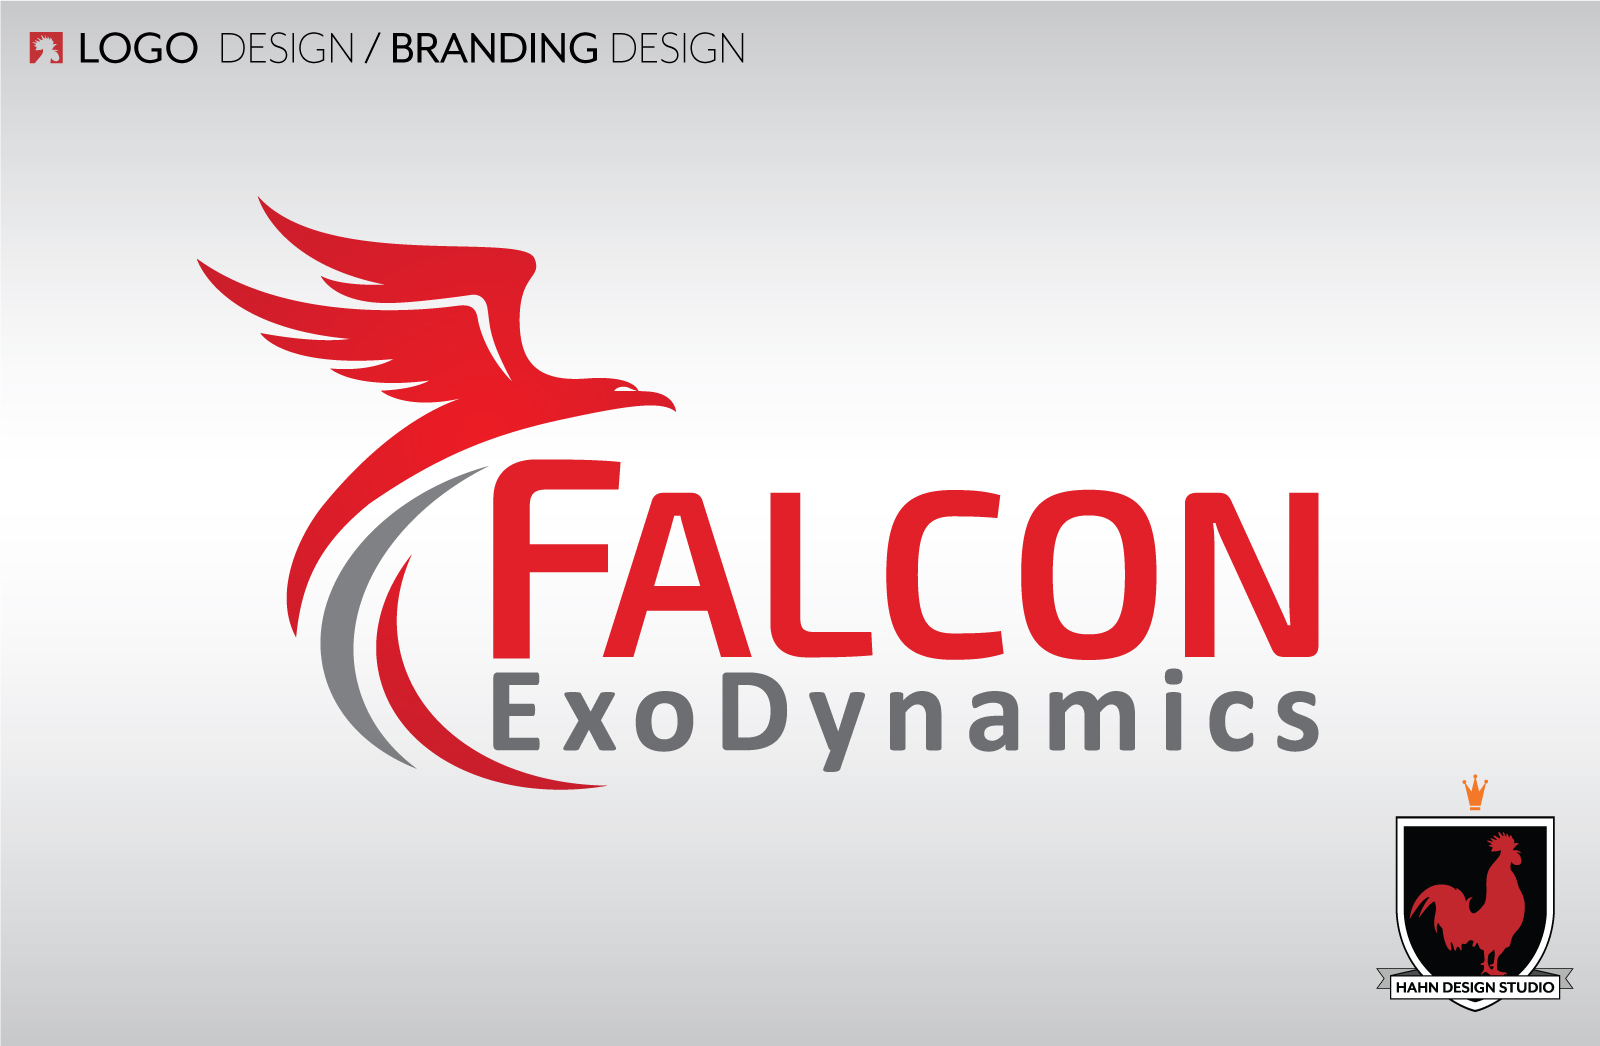 Logo and Business Card Design | Branding for Falcon ExoDynamics | Hahn Design Studio